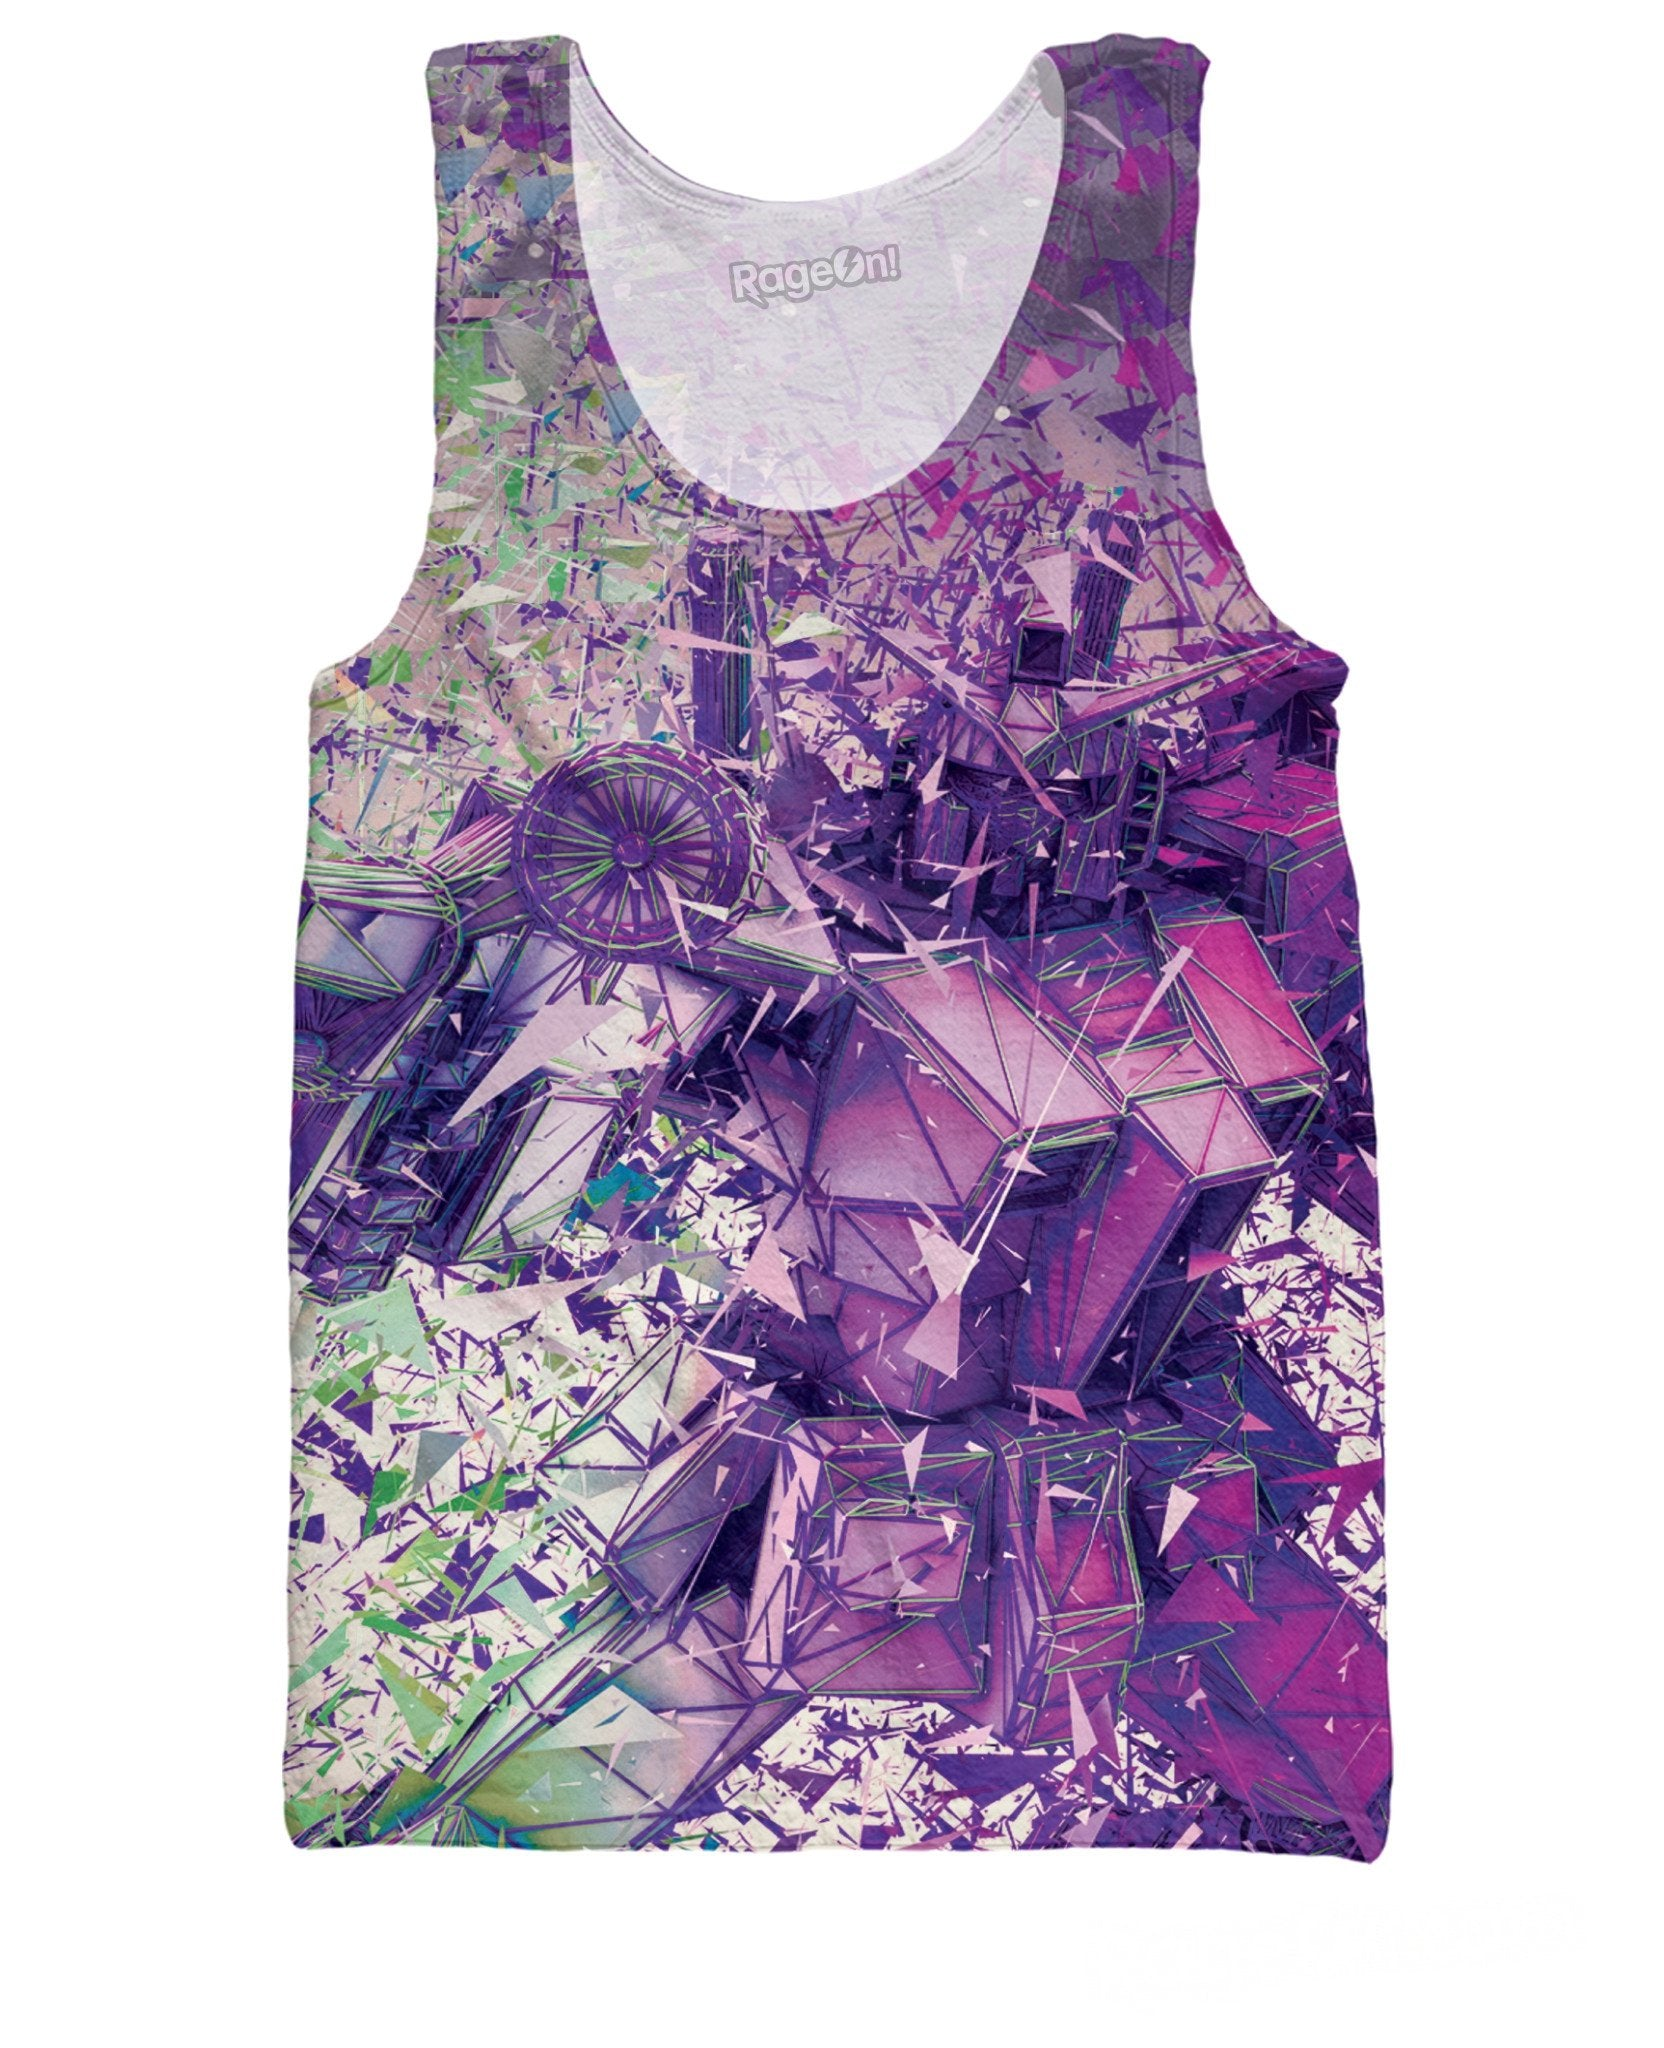 3D Transformers Limited Edition Purple Tank Top - RBFFTW